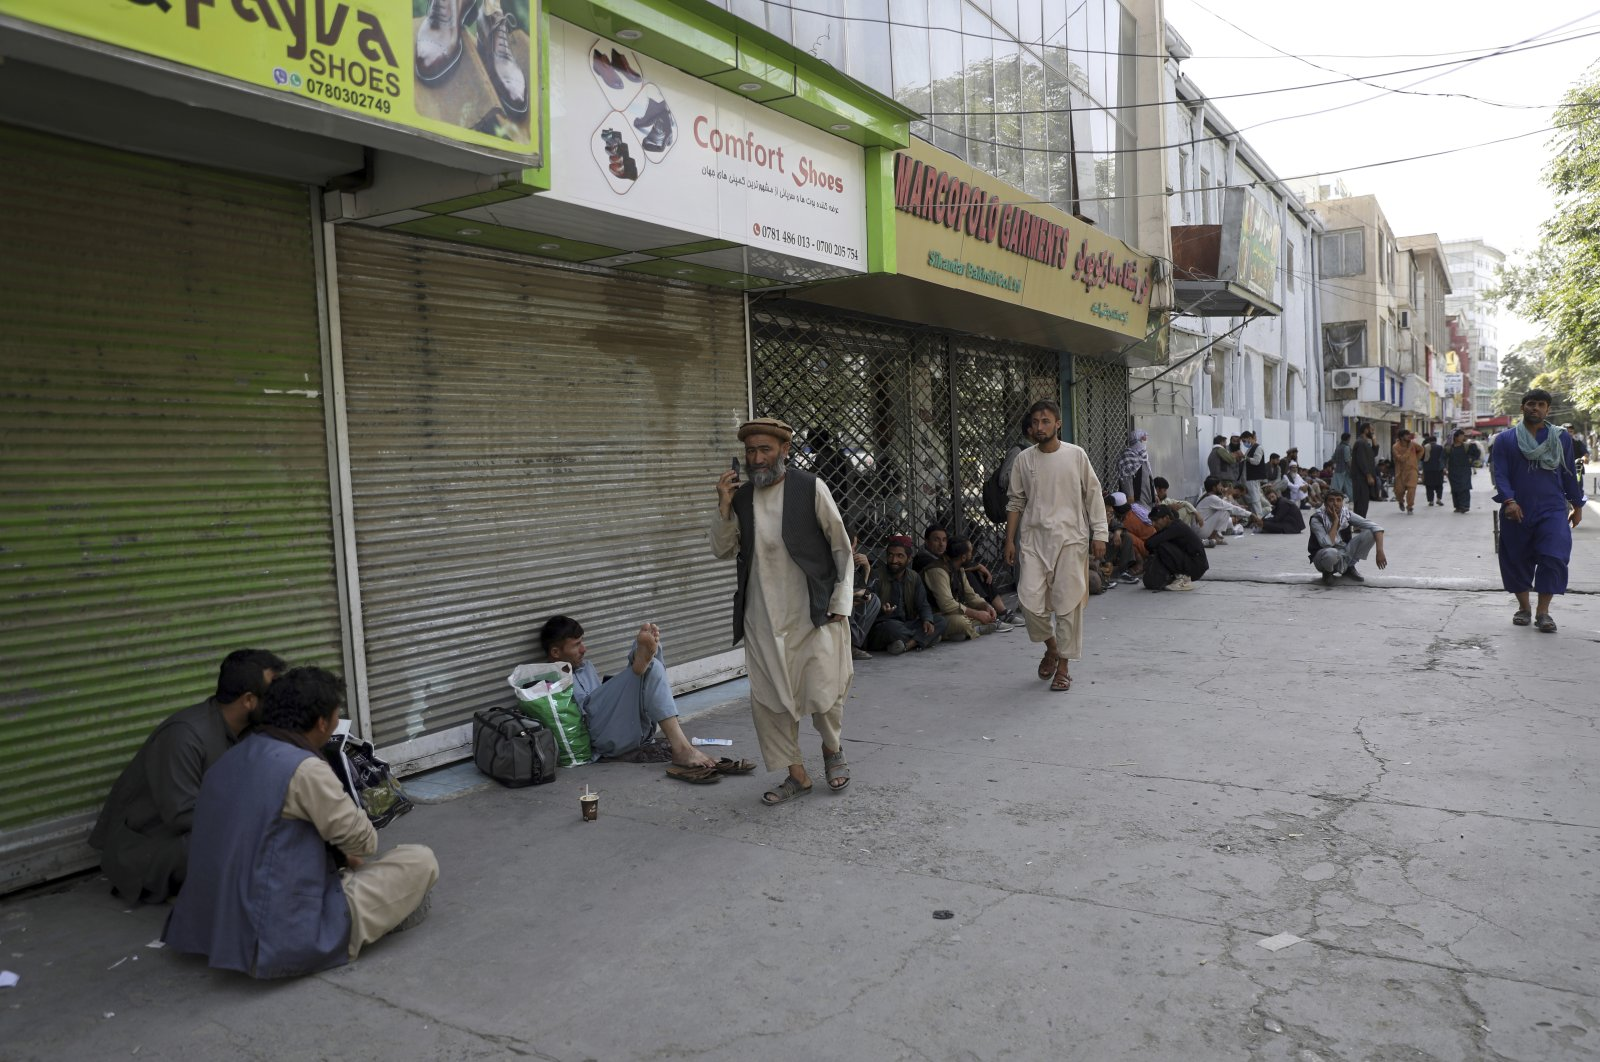 Afghans line a mostly shuttered market for hours to try to withdraw money from a nearby bank, in Kabul, Afghanistan,  Aug. 15, 2021. (AP Photo)